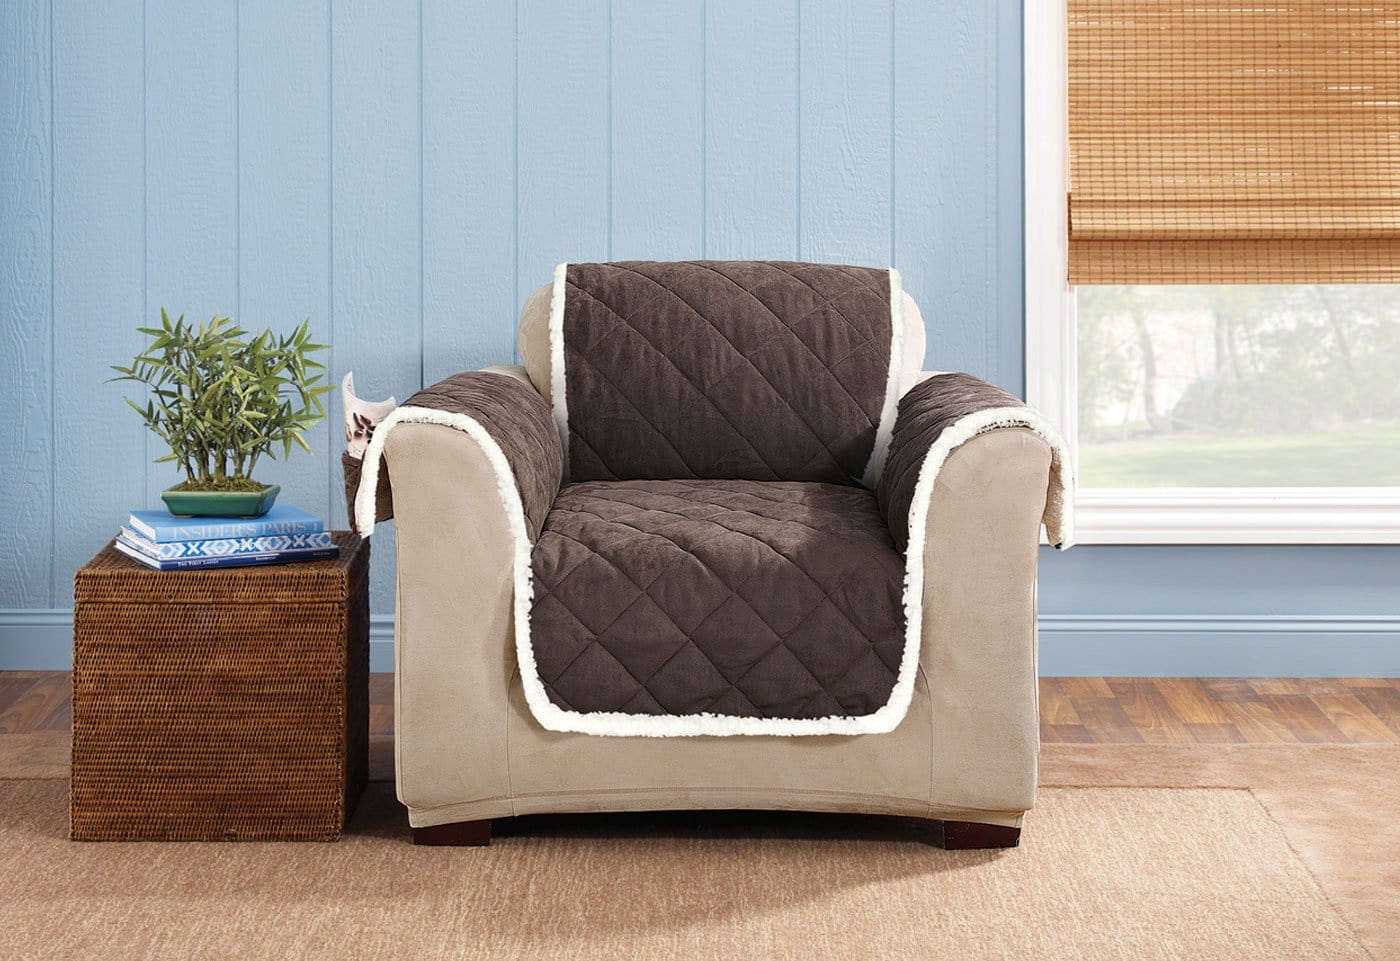 Soft Suede & Sherpa Chair Furniture Cover 100% Polyester Pet Furniture Cover Machine Washable - Chair / Chocolate/Cream